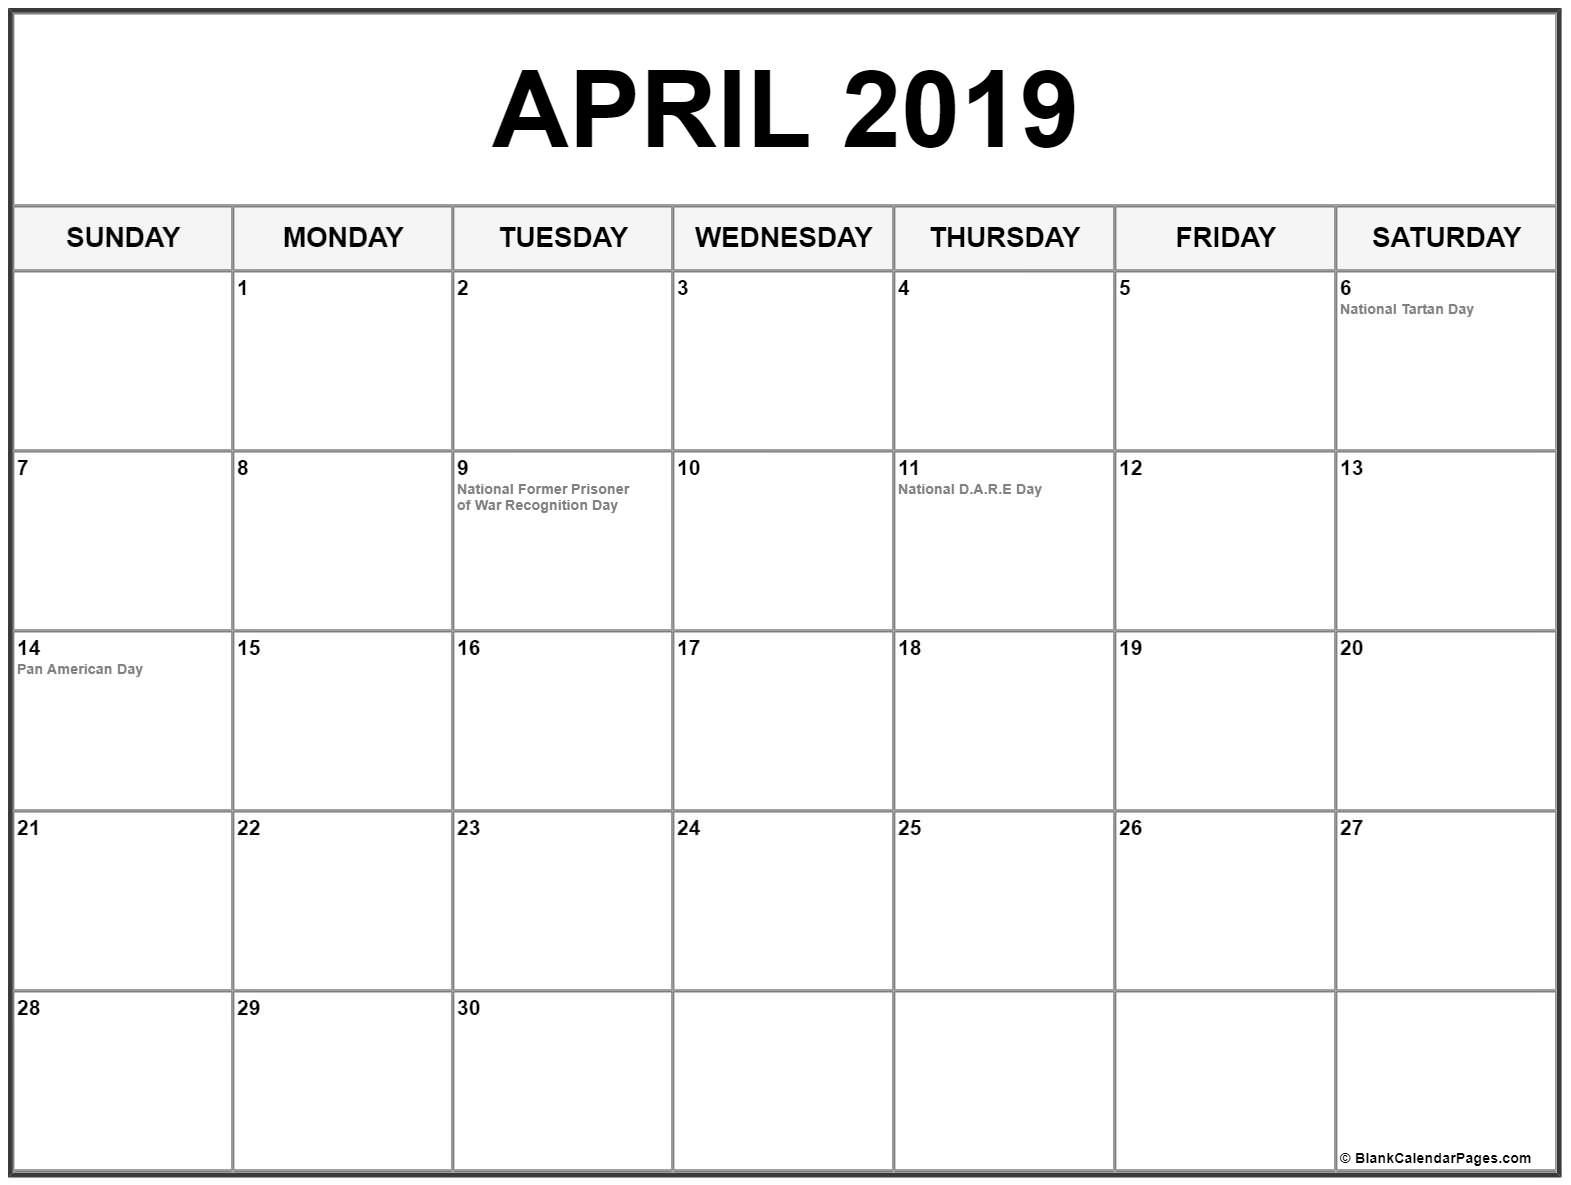 April 2019 Calendar Philippines With Holidays